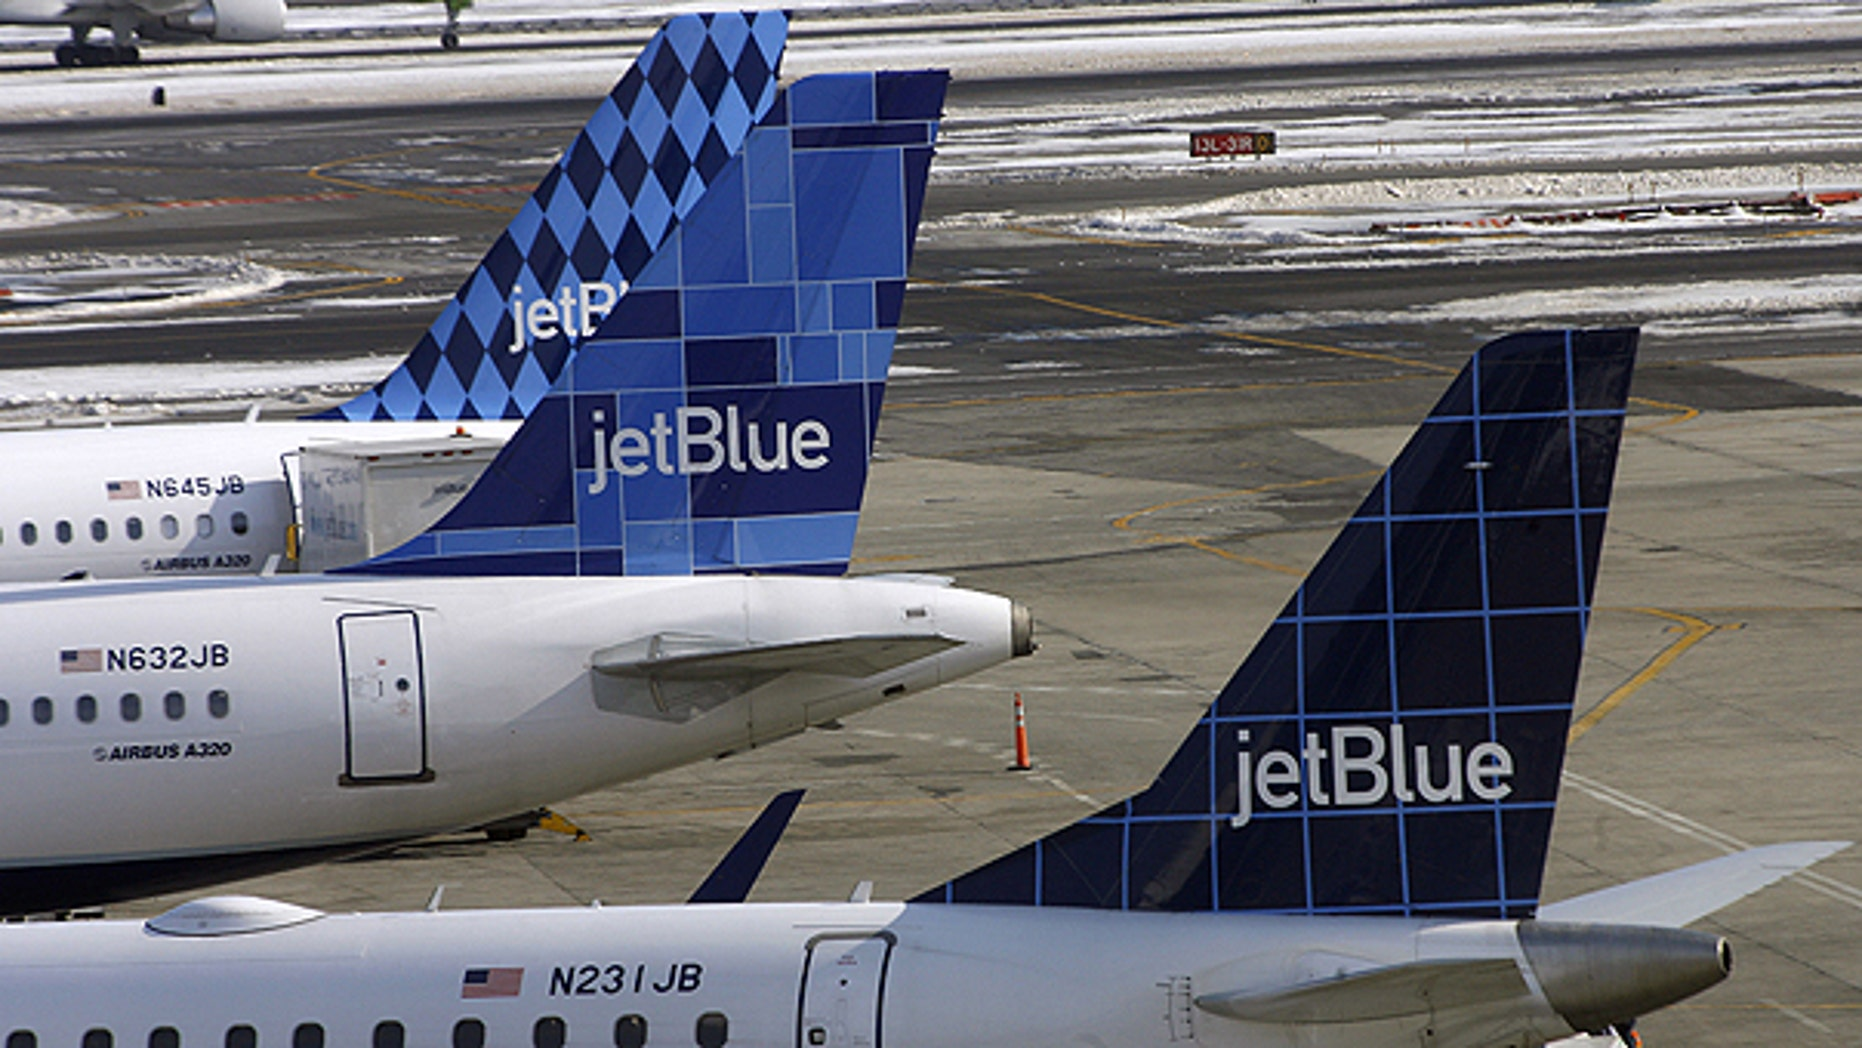 In this Feb. 20, 2007 file photo, JetBlue airplanes display their registration numbers along the windows at the rear of the aircraft at John F. Kennedy International Airport in New York.